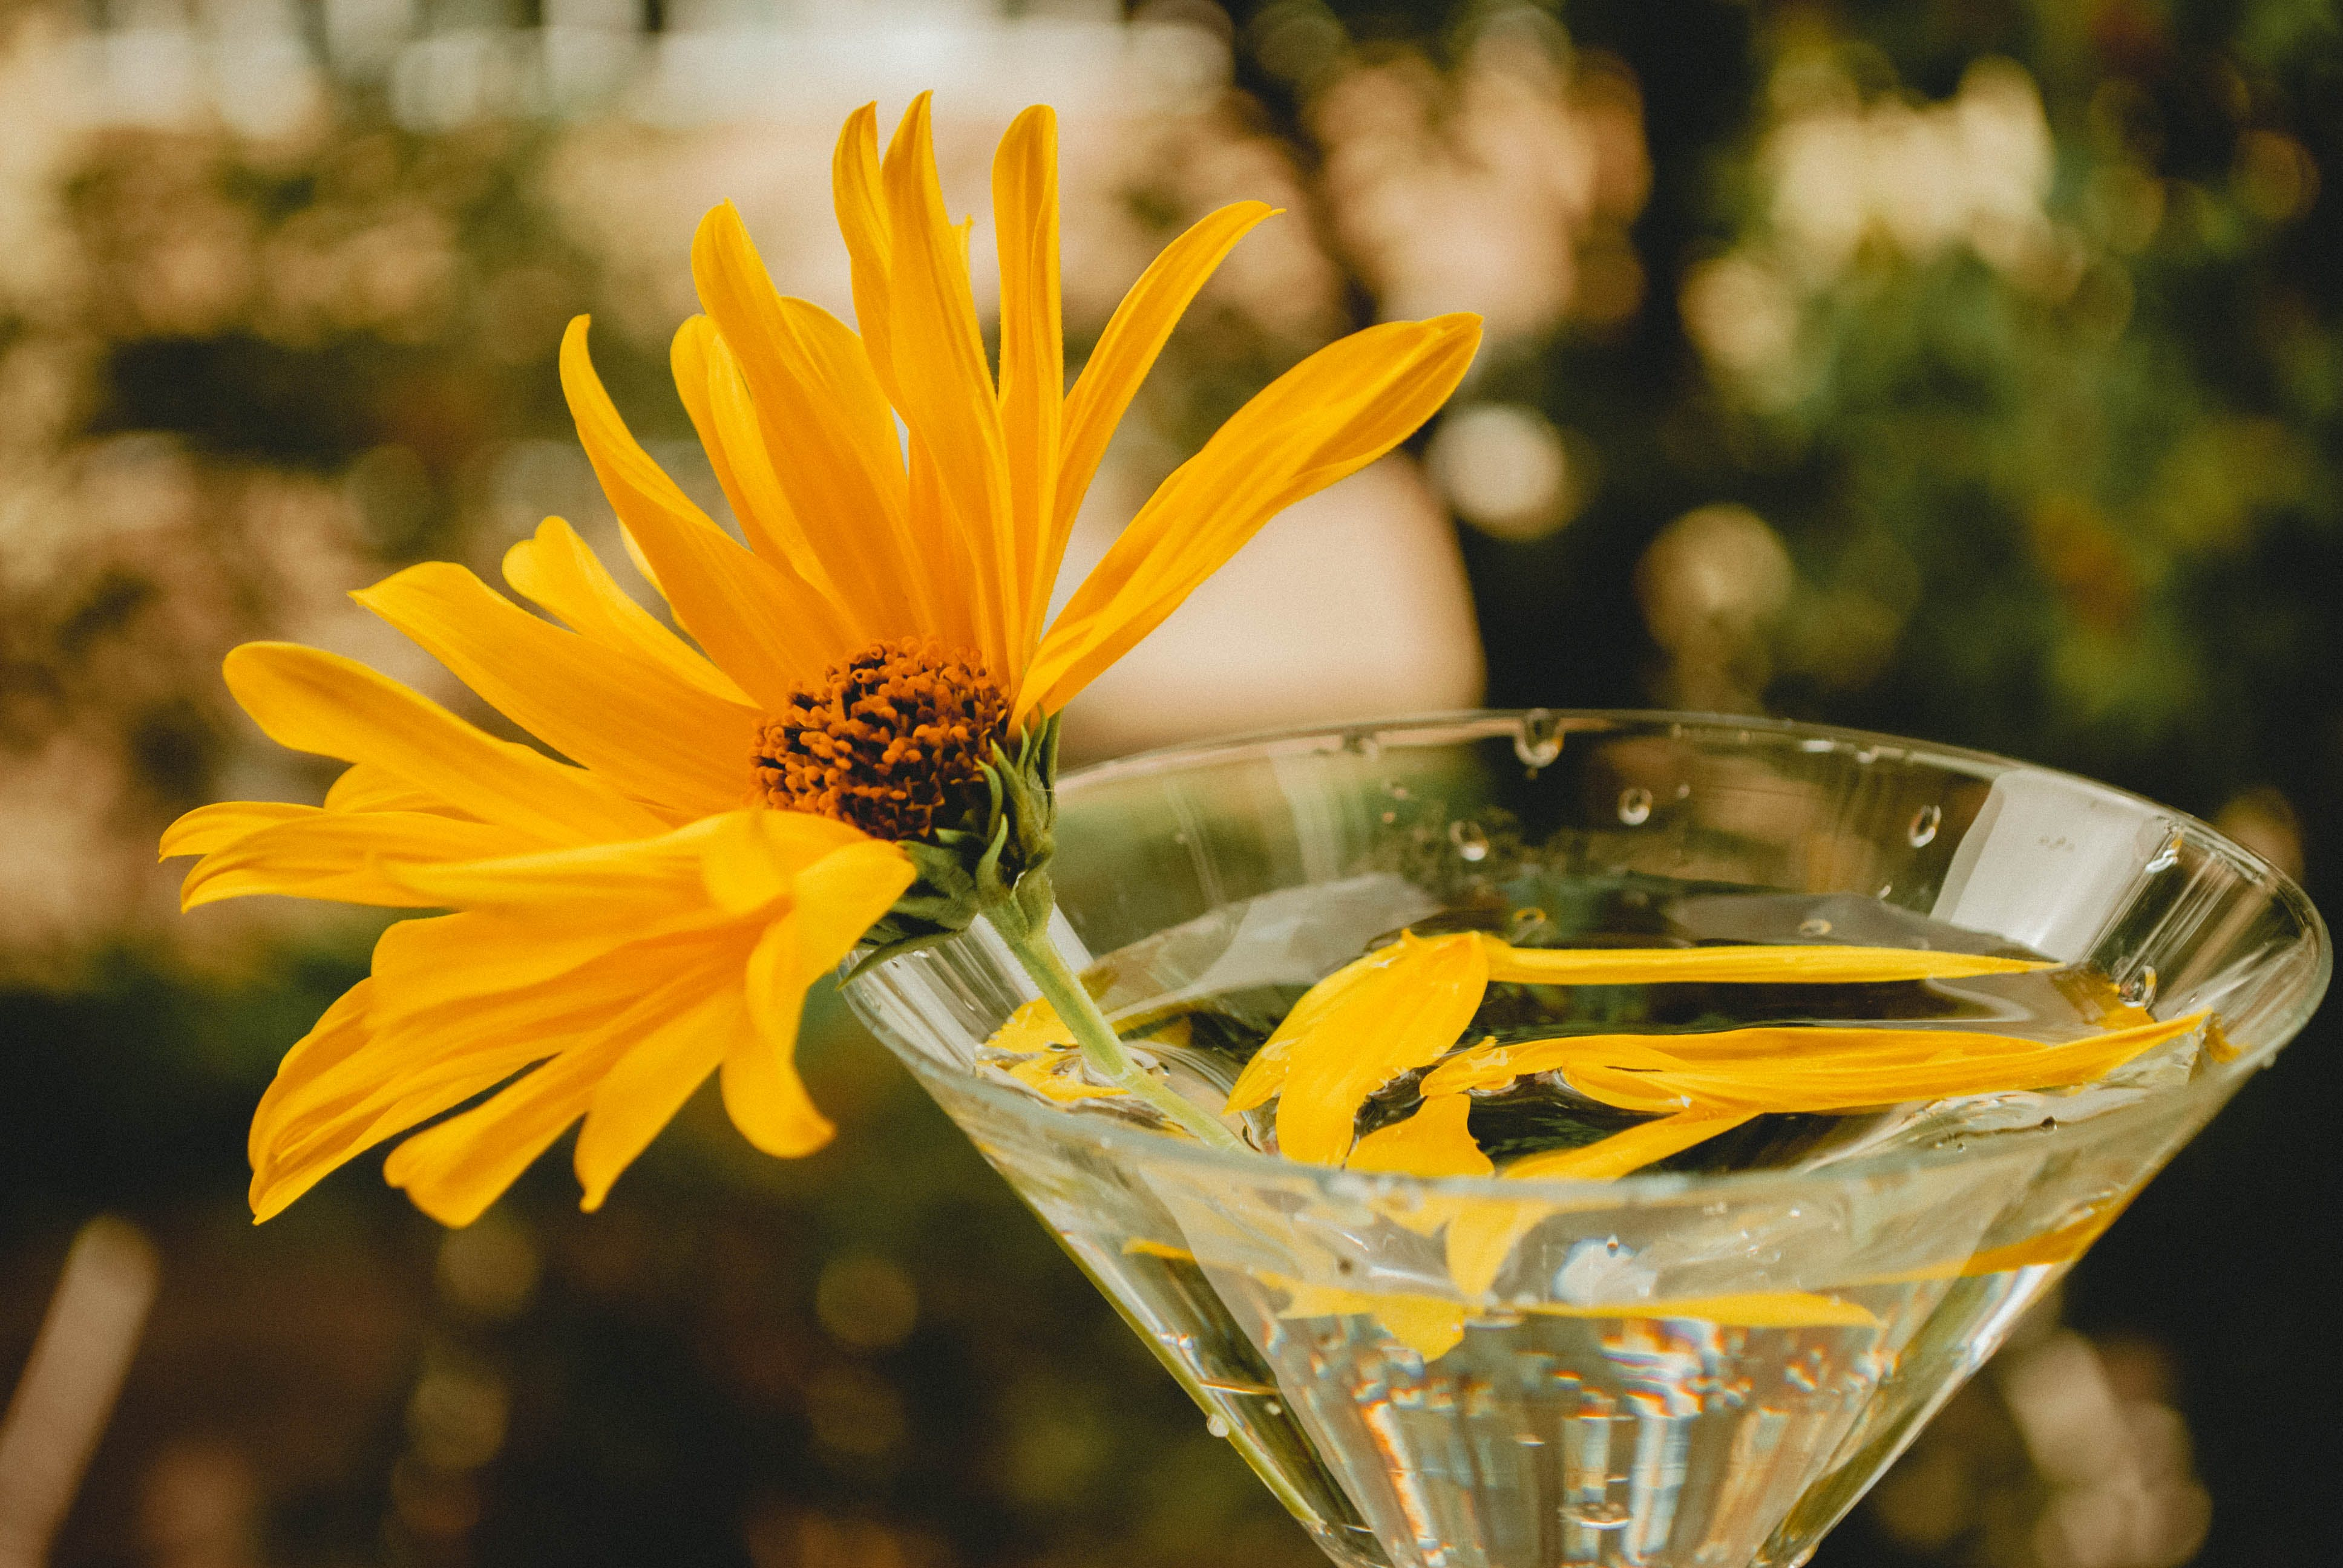 Selective Focus Photo of Yellow Singapore Daisy Flower on Clear Martini Glass